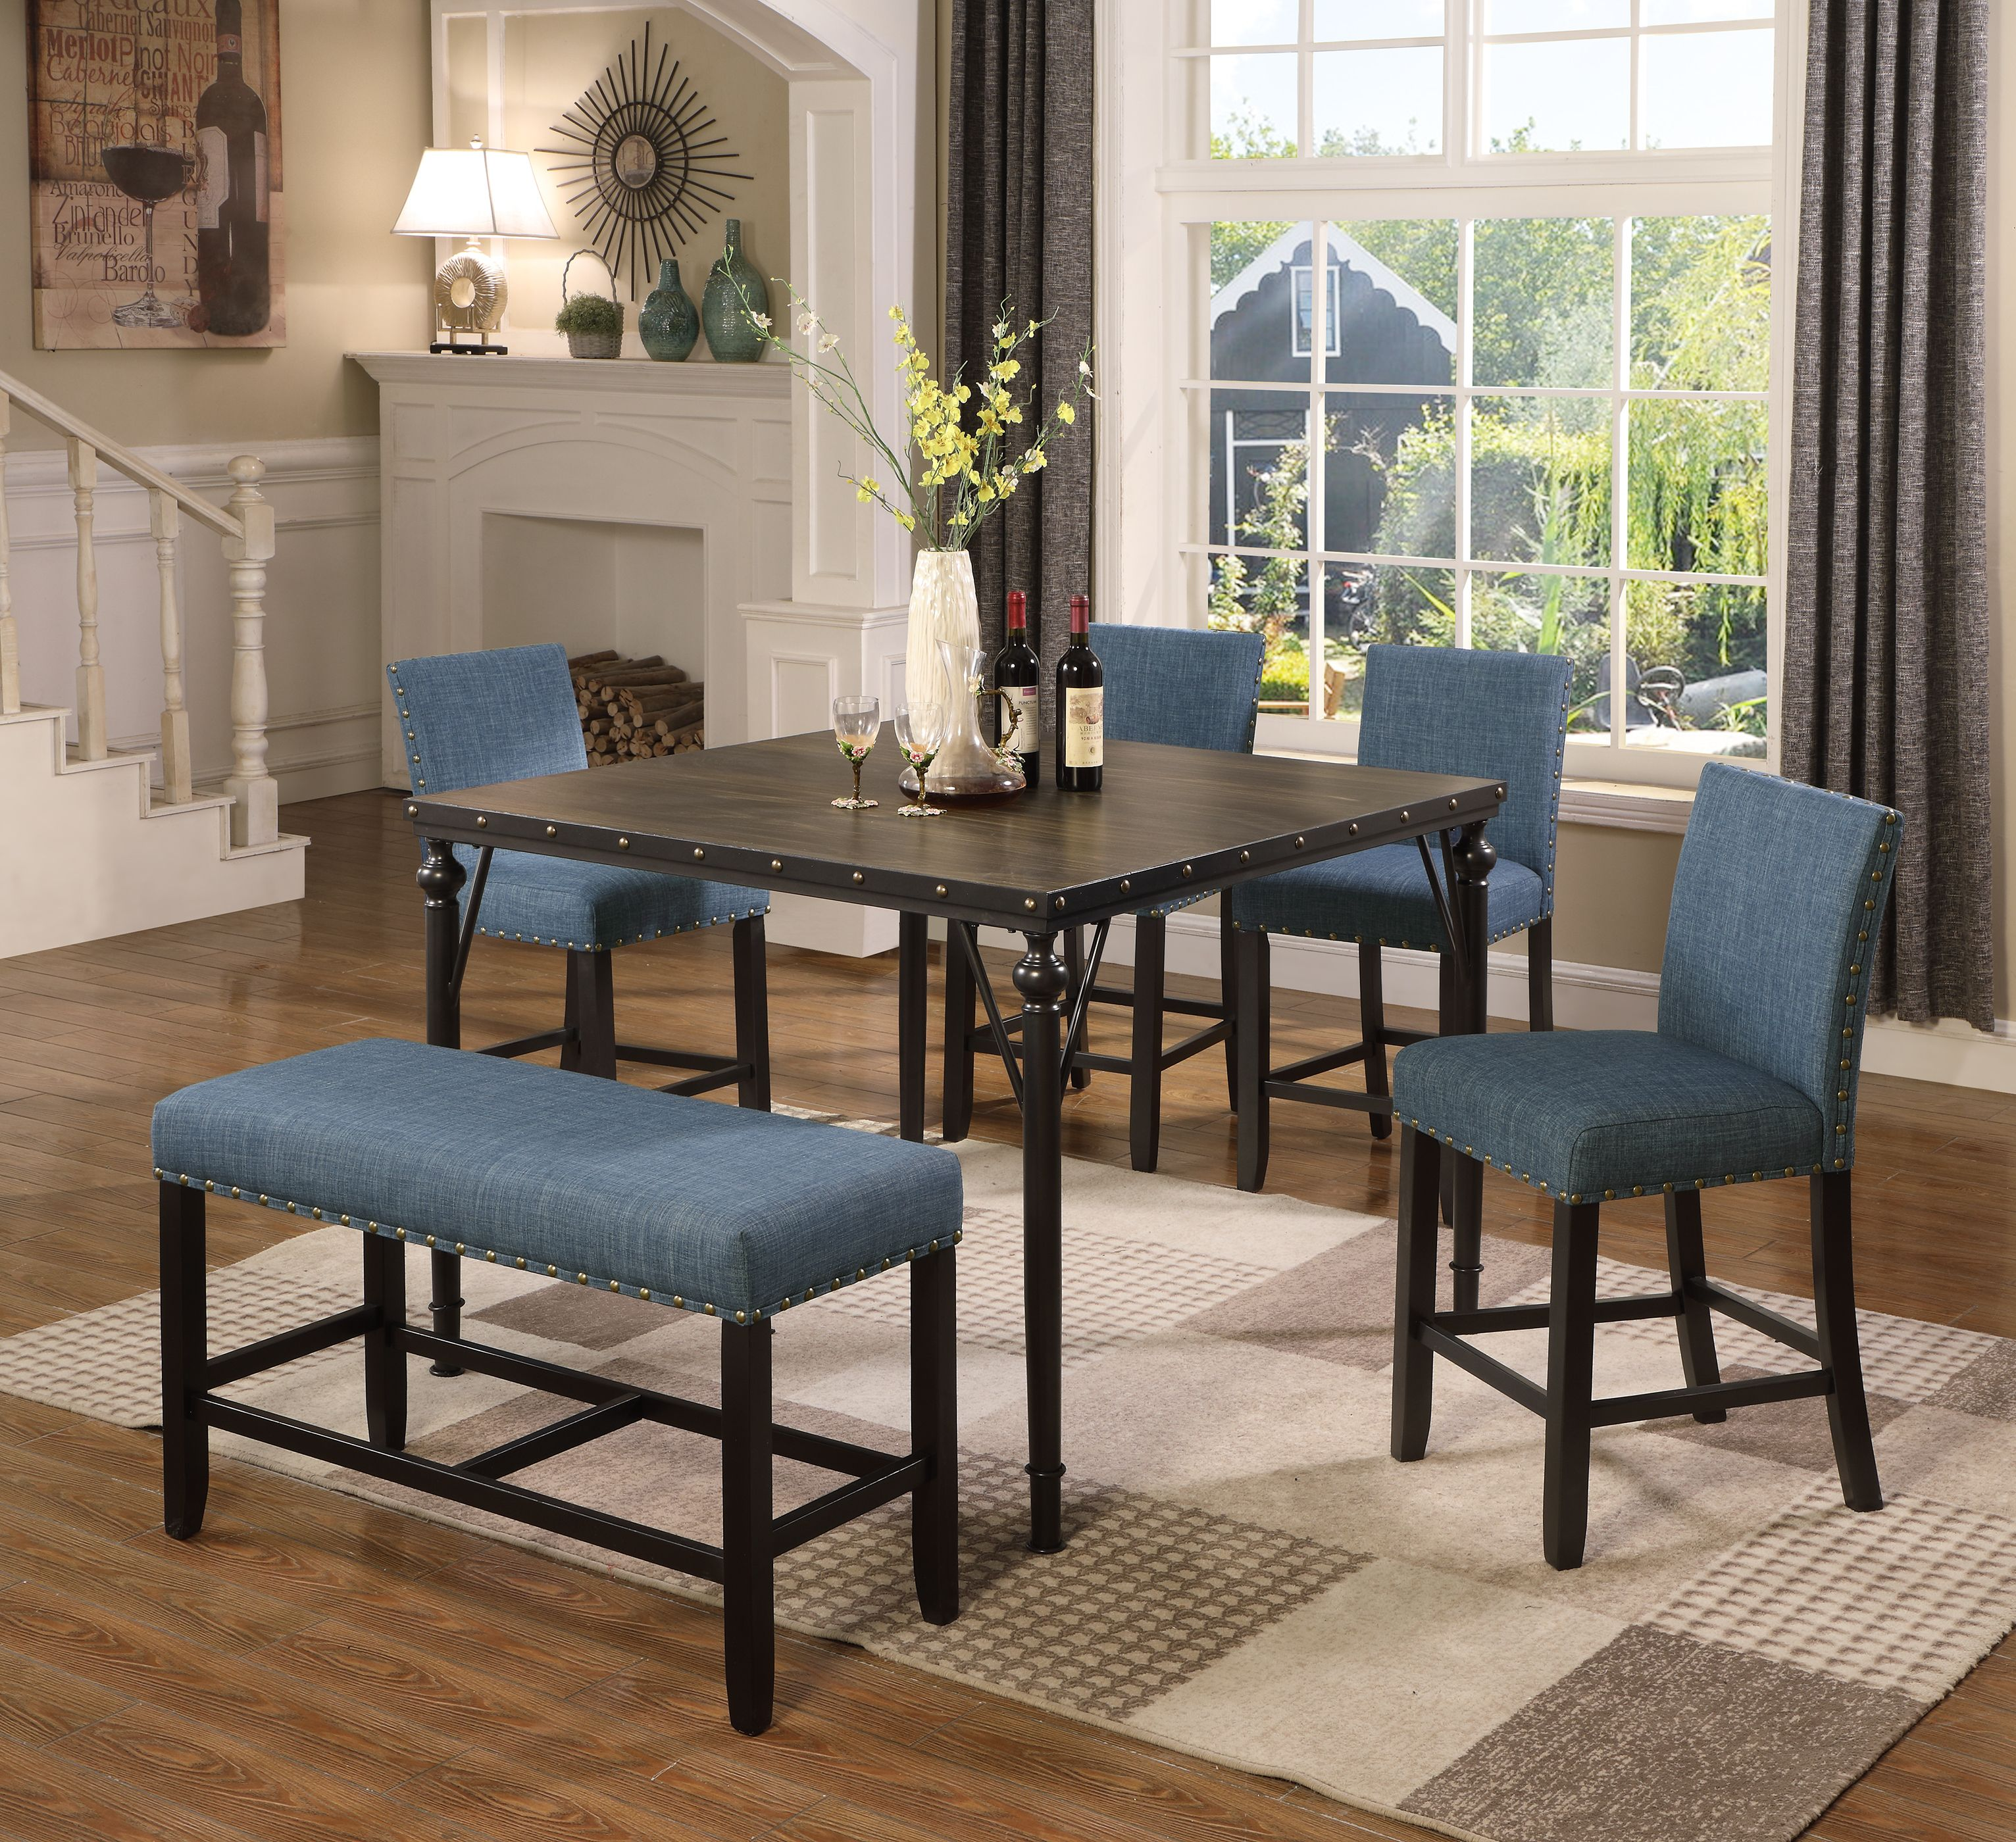 Roundhill Biony Counter Height 6 Piece Espresso Wood Dining Set With Blue Fabric Nailhead Chairs And Pub Bench Walmart Com Walmart Com